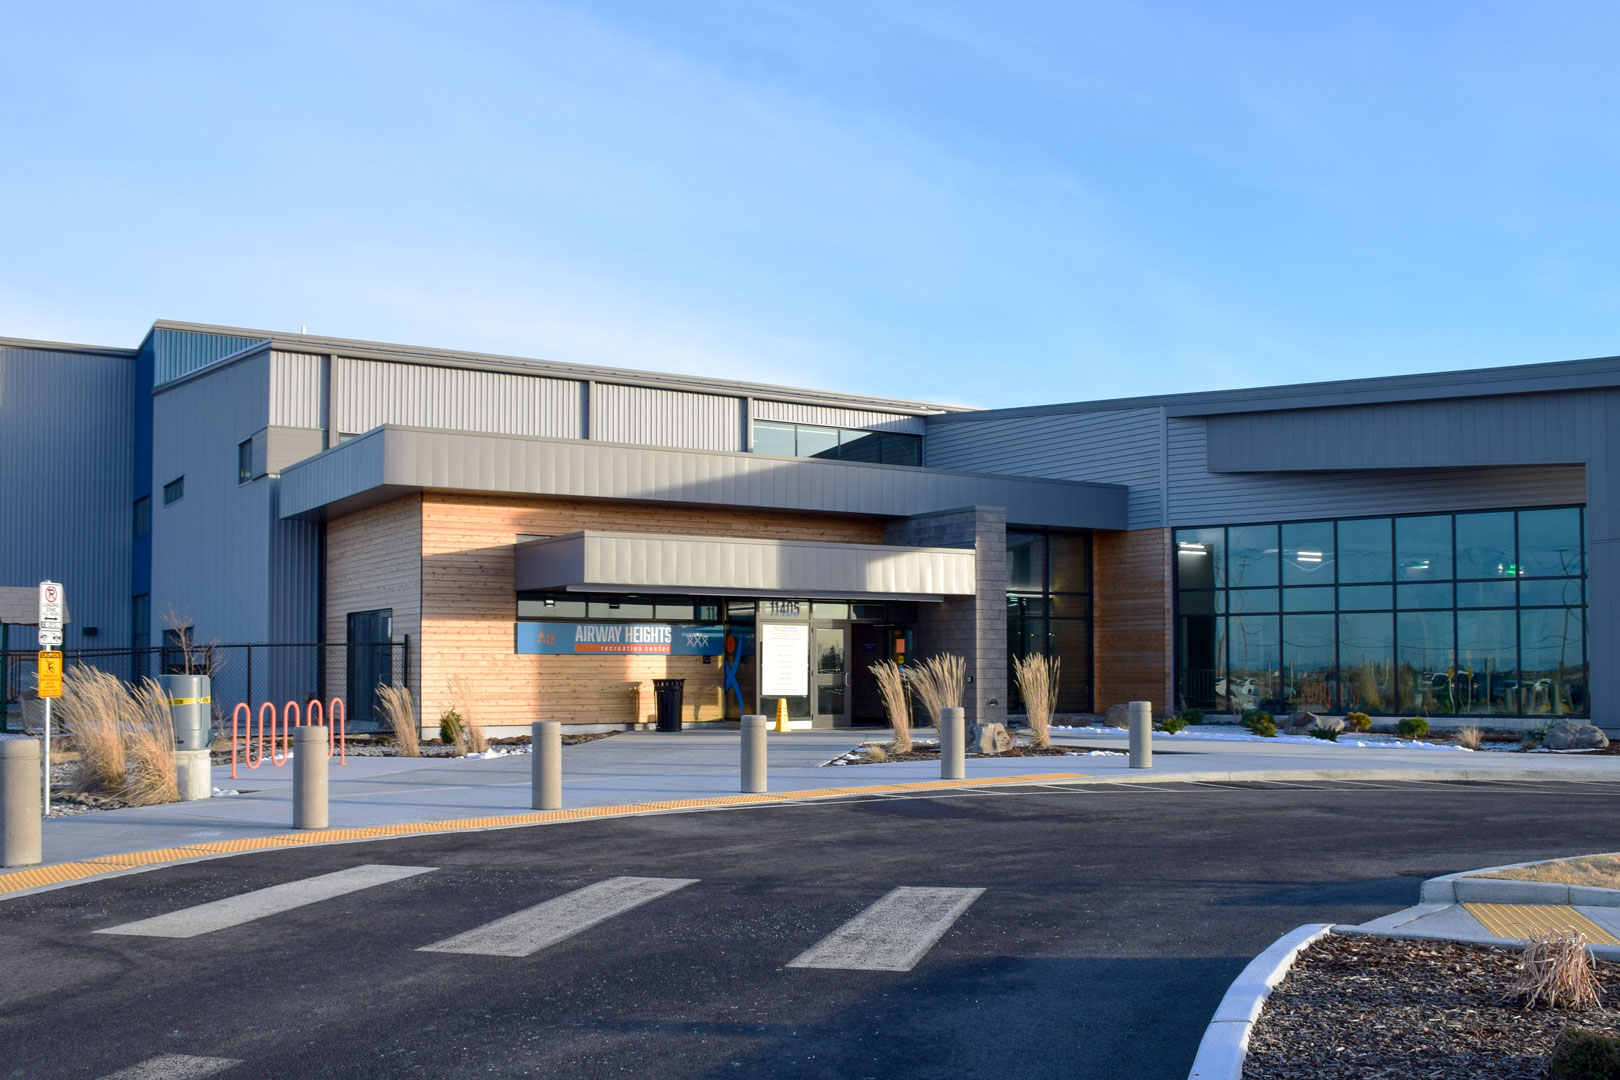 City of Airway Heights<br>Recreation Center